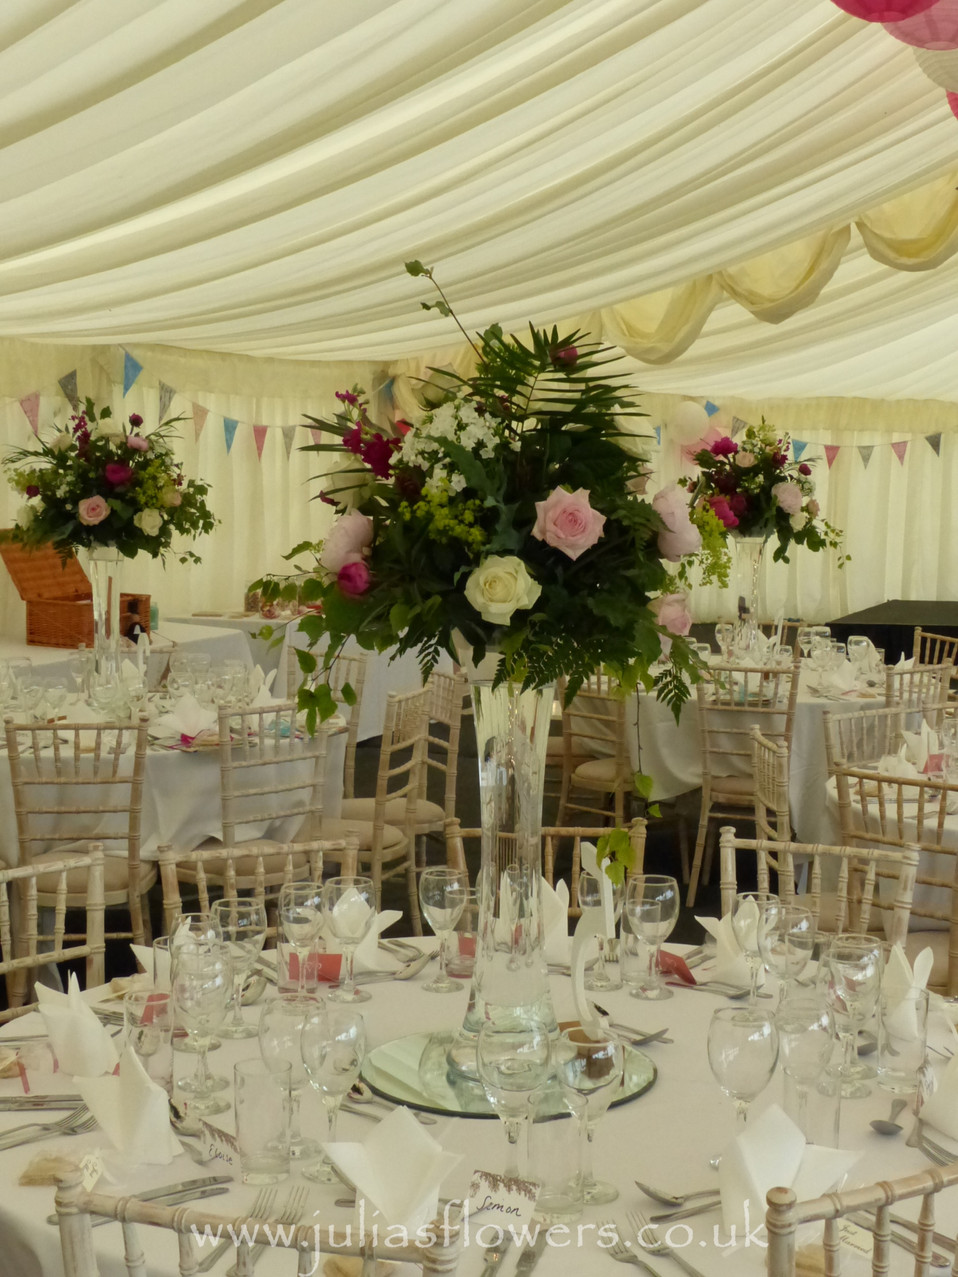 Tall Vases with Florals on Tables.JPG